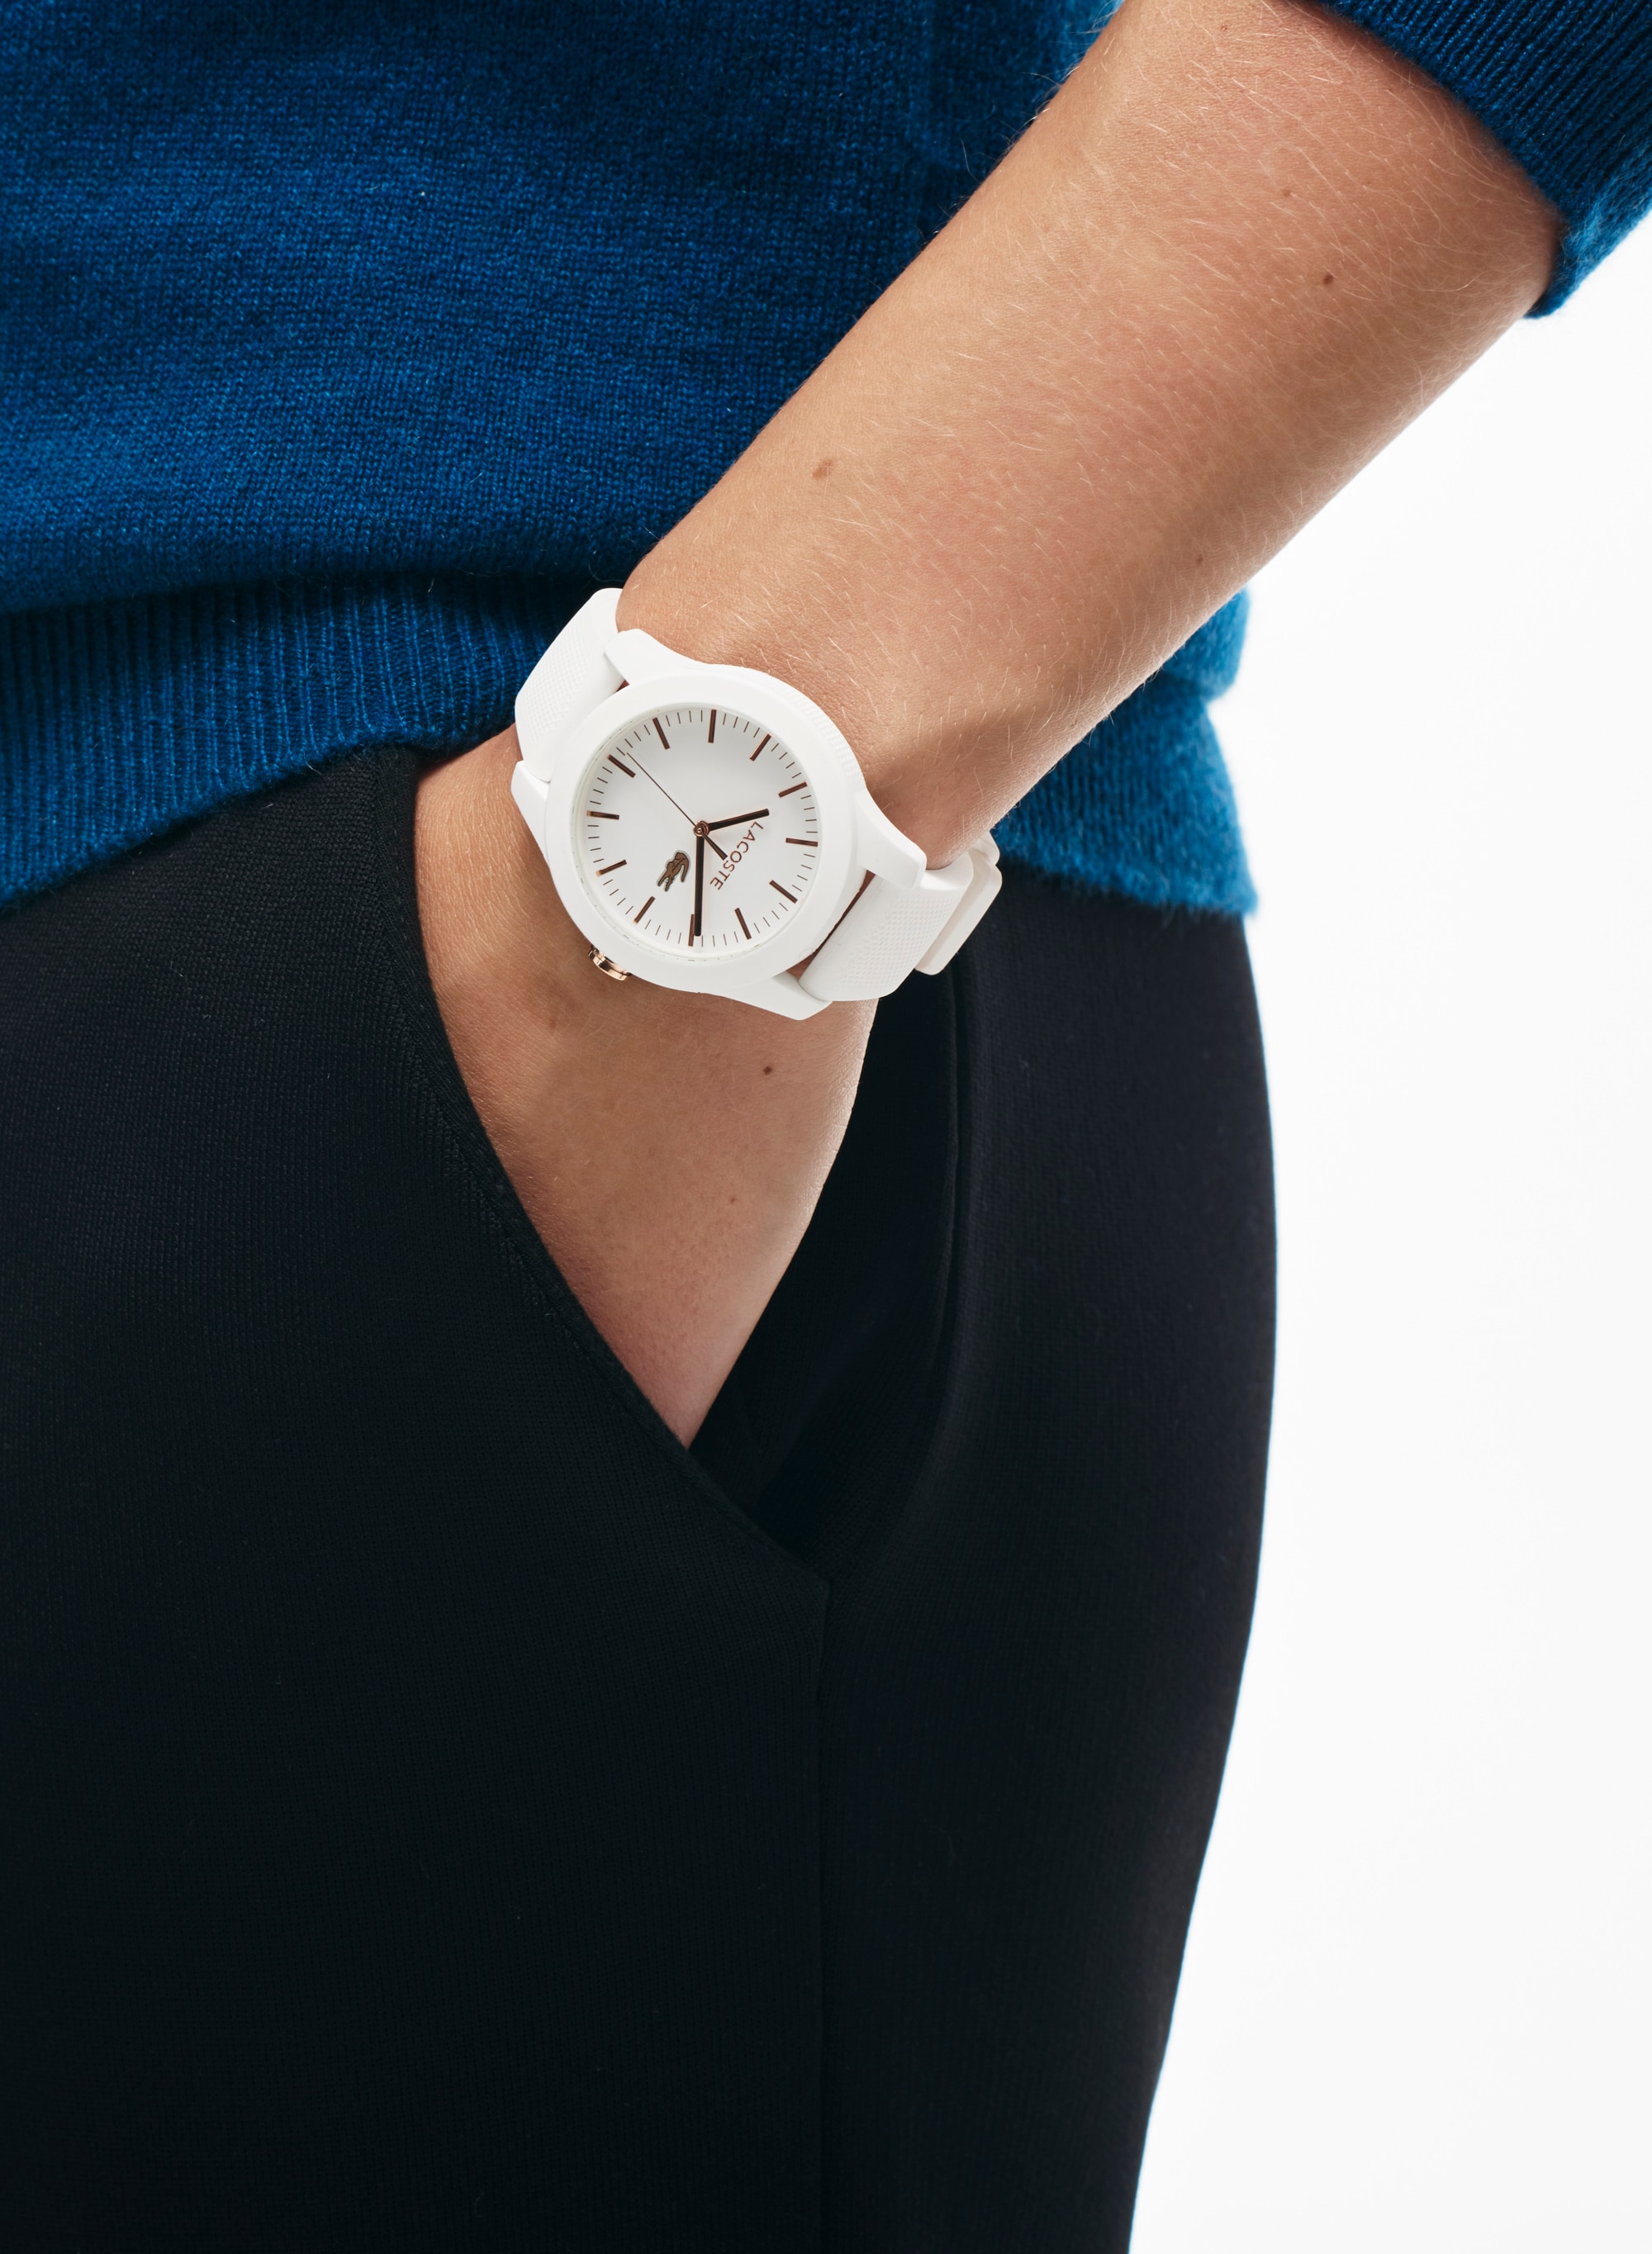 Women's Lacoste 12.12 Watch with White Silicone Strap